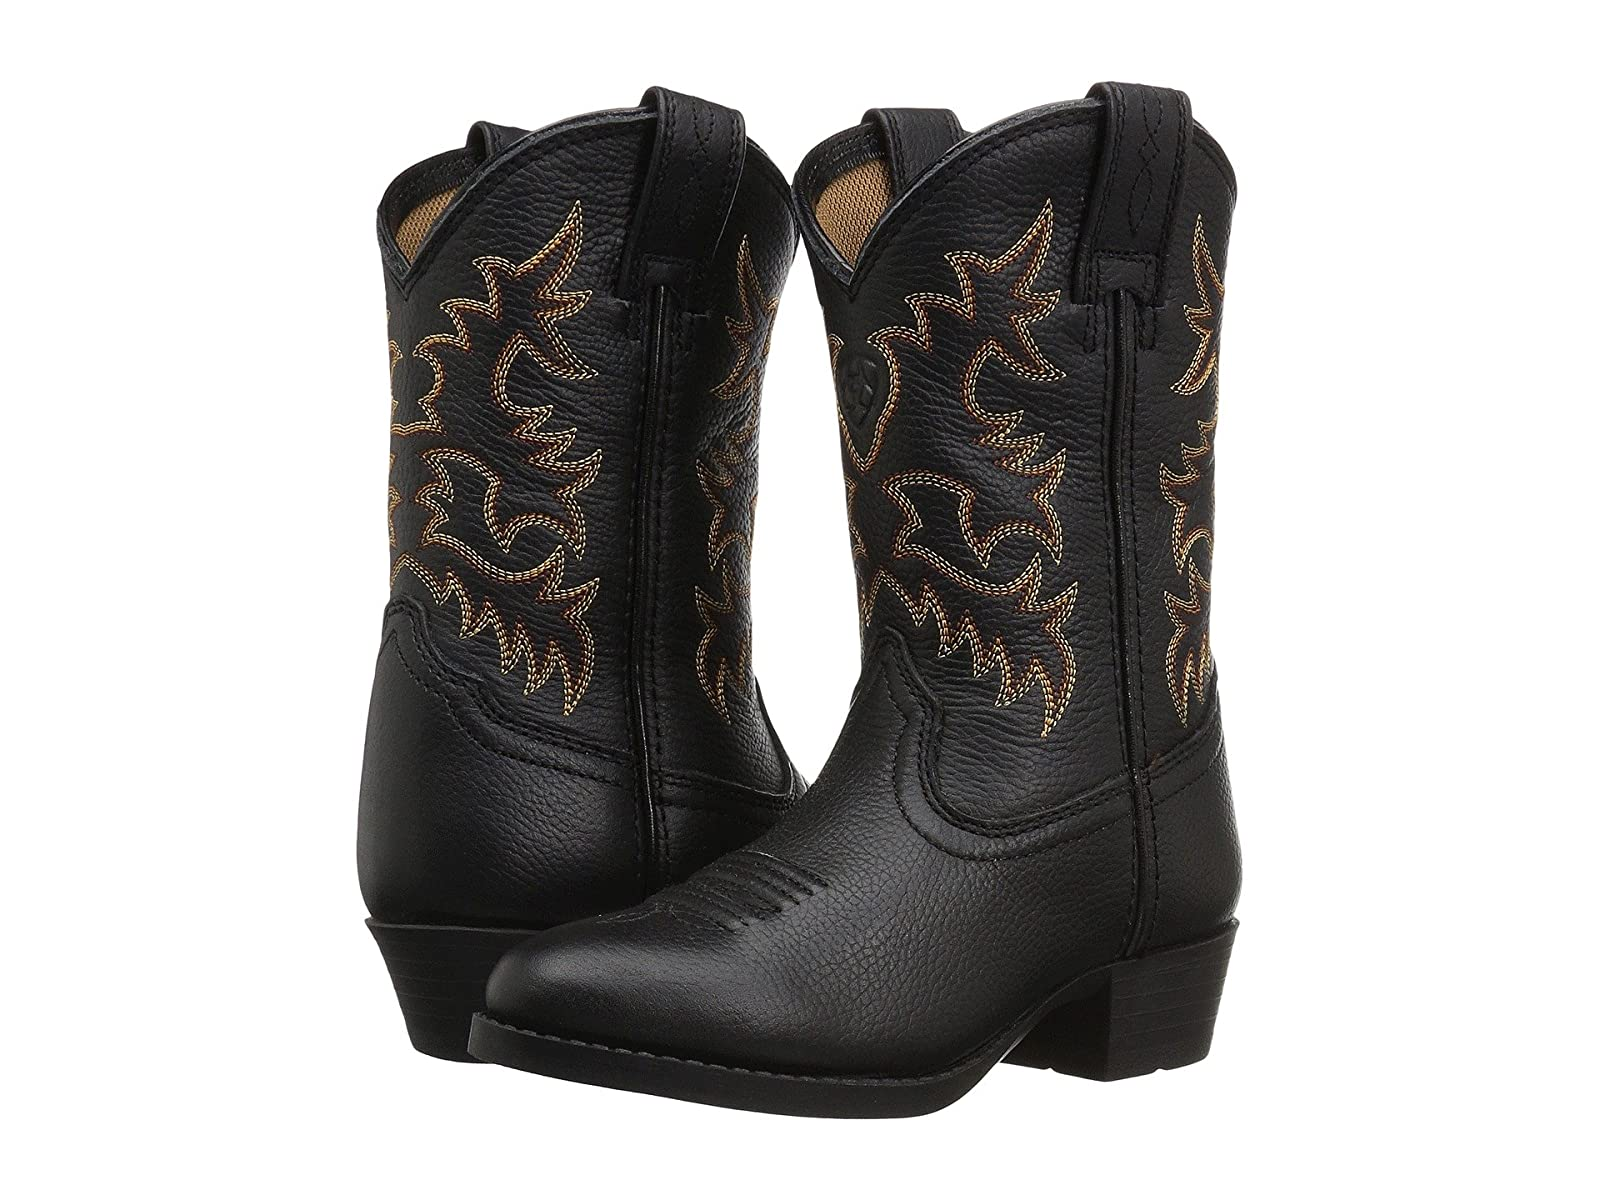 Ariat Kids Heritage Western (Toddler/Little Kid/Big Kid)Cheap and distinctive eye-catching shoes